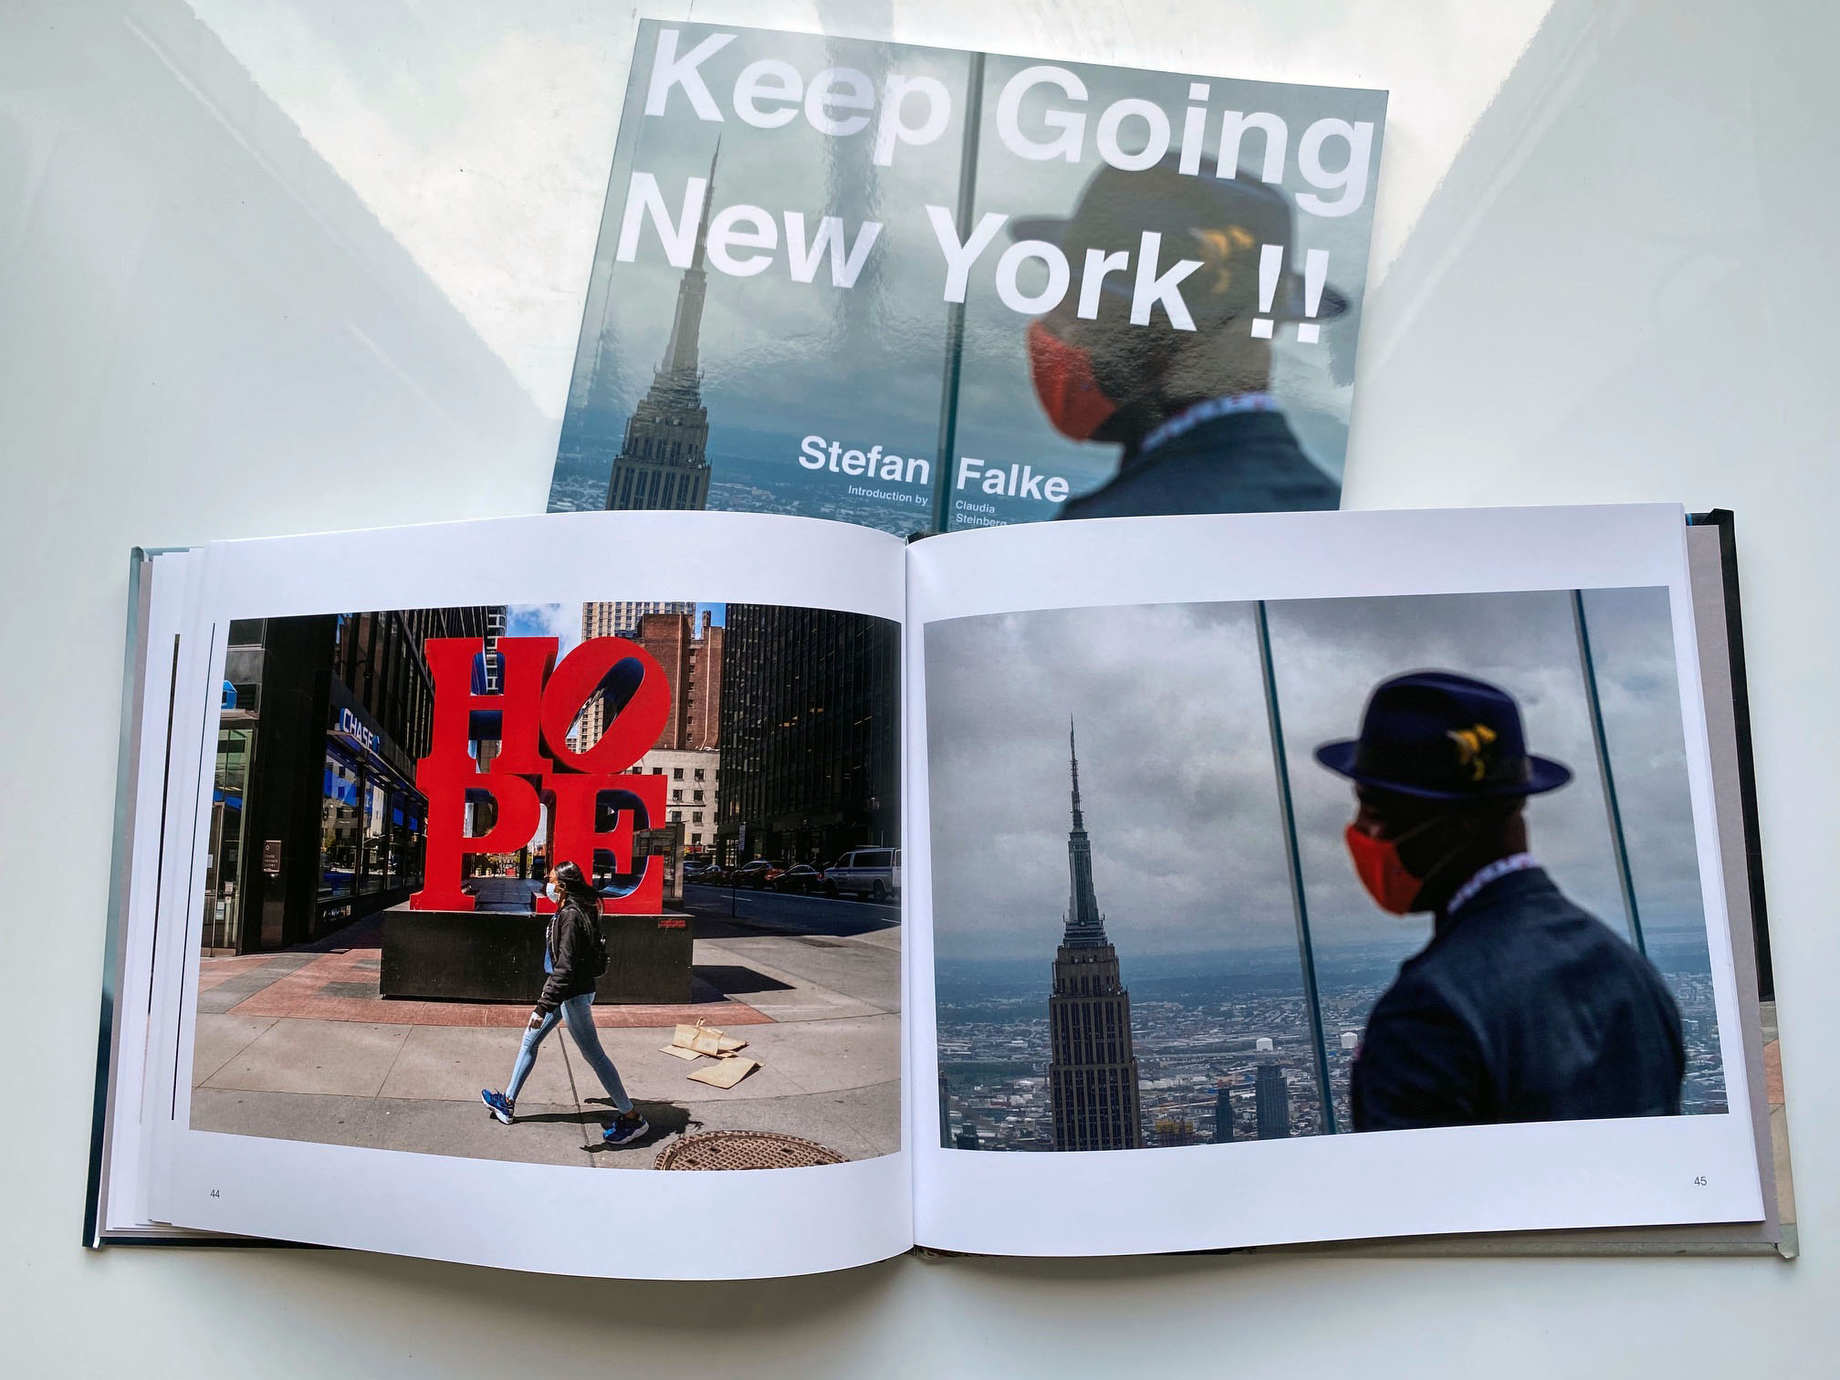 Keep_Going_New_York__016.JPG